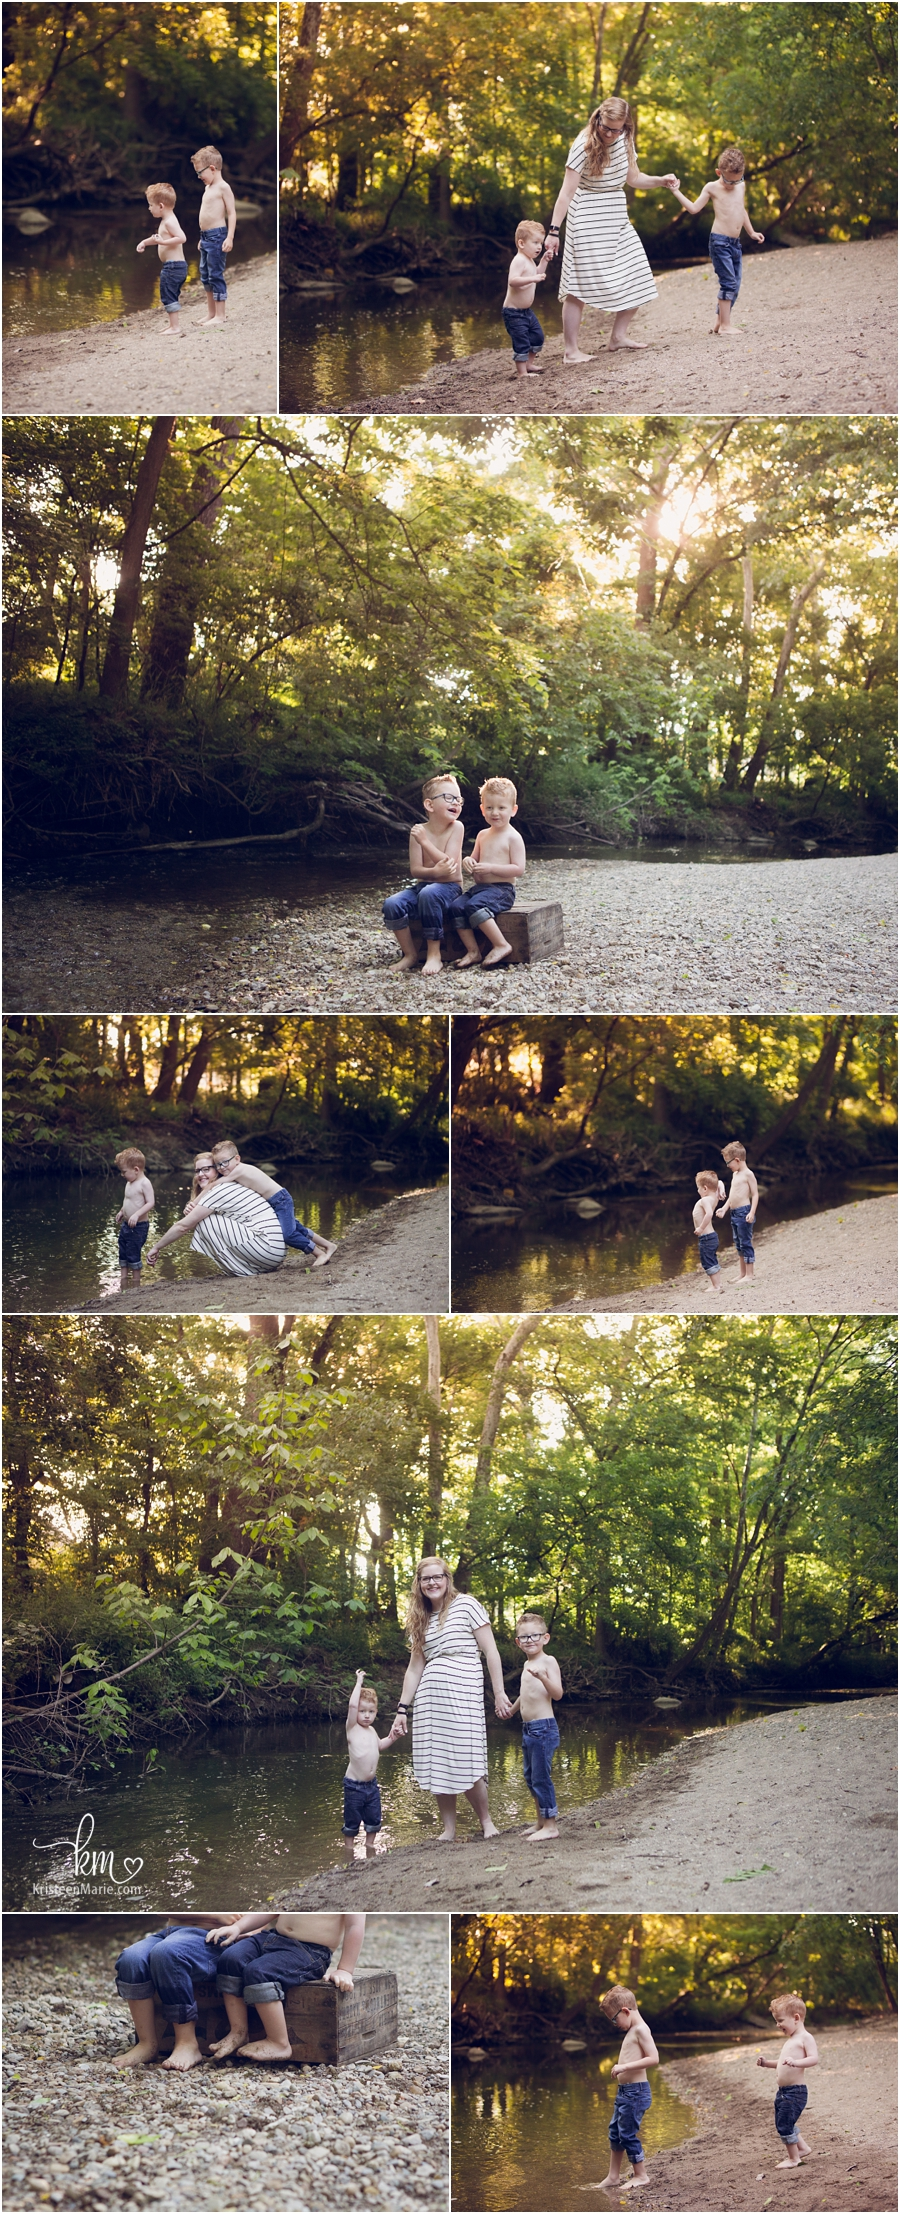 creek stomping sunrise photography - boys playing in creek/water